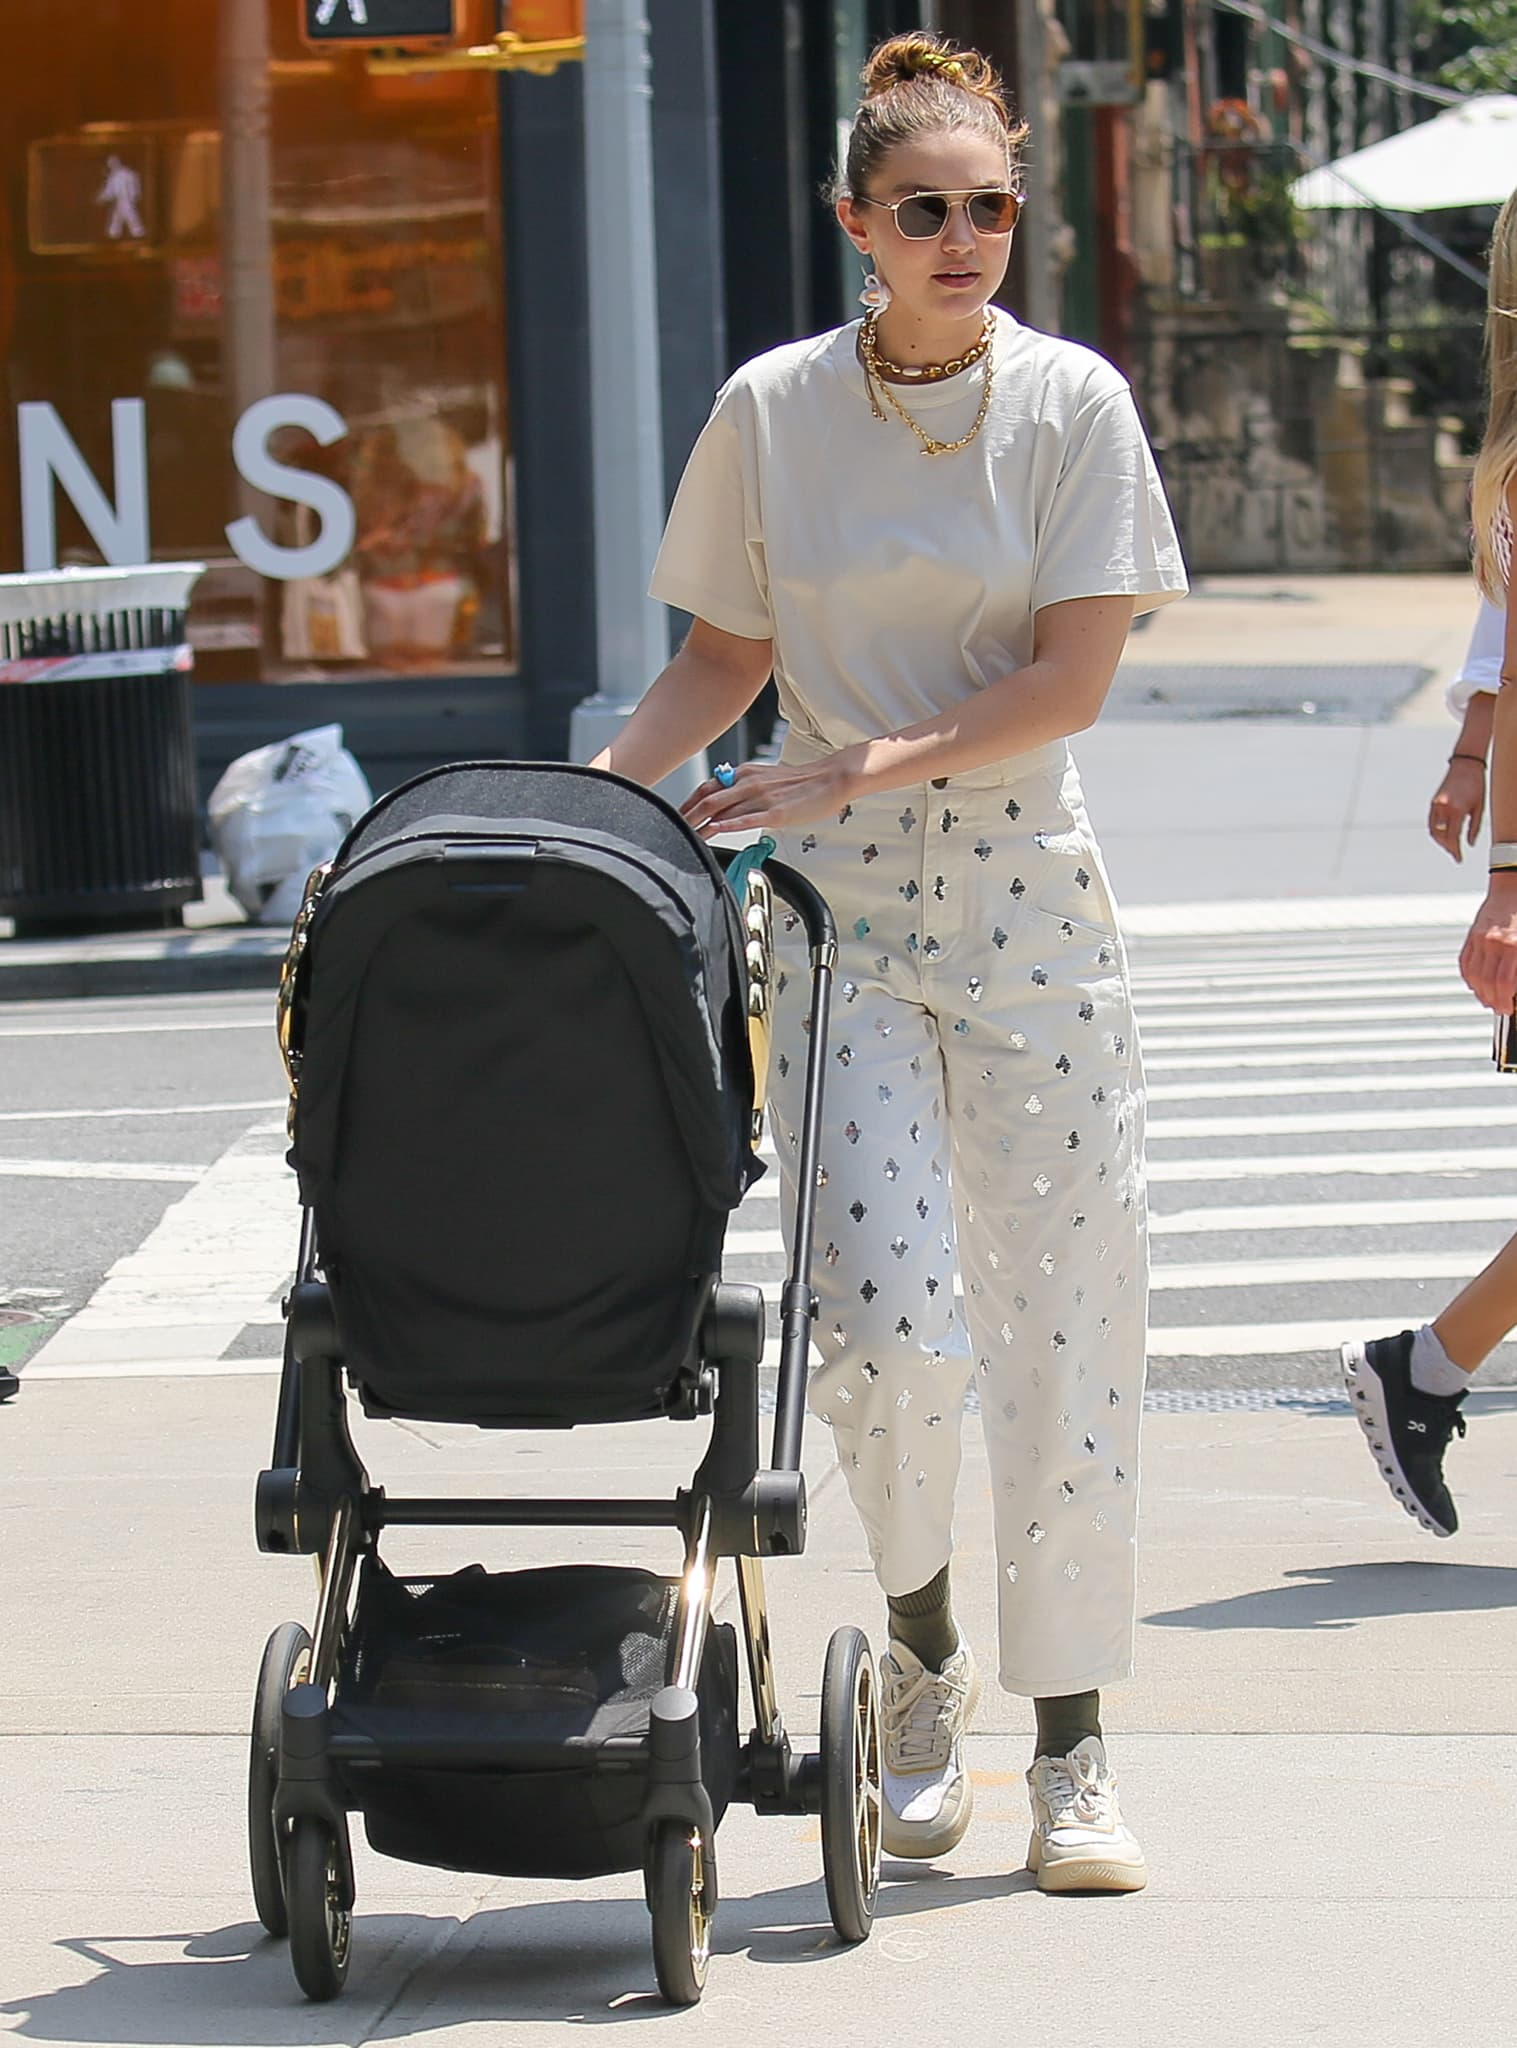 Gigi Hadid steps out in New York City with her daughter, Khai, on July 28, 2021